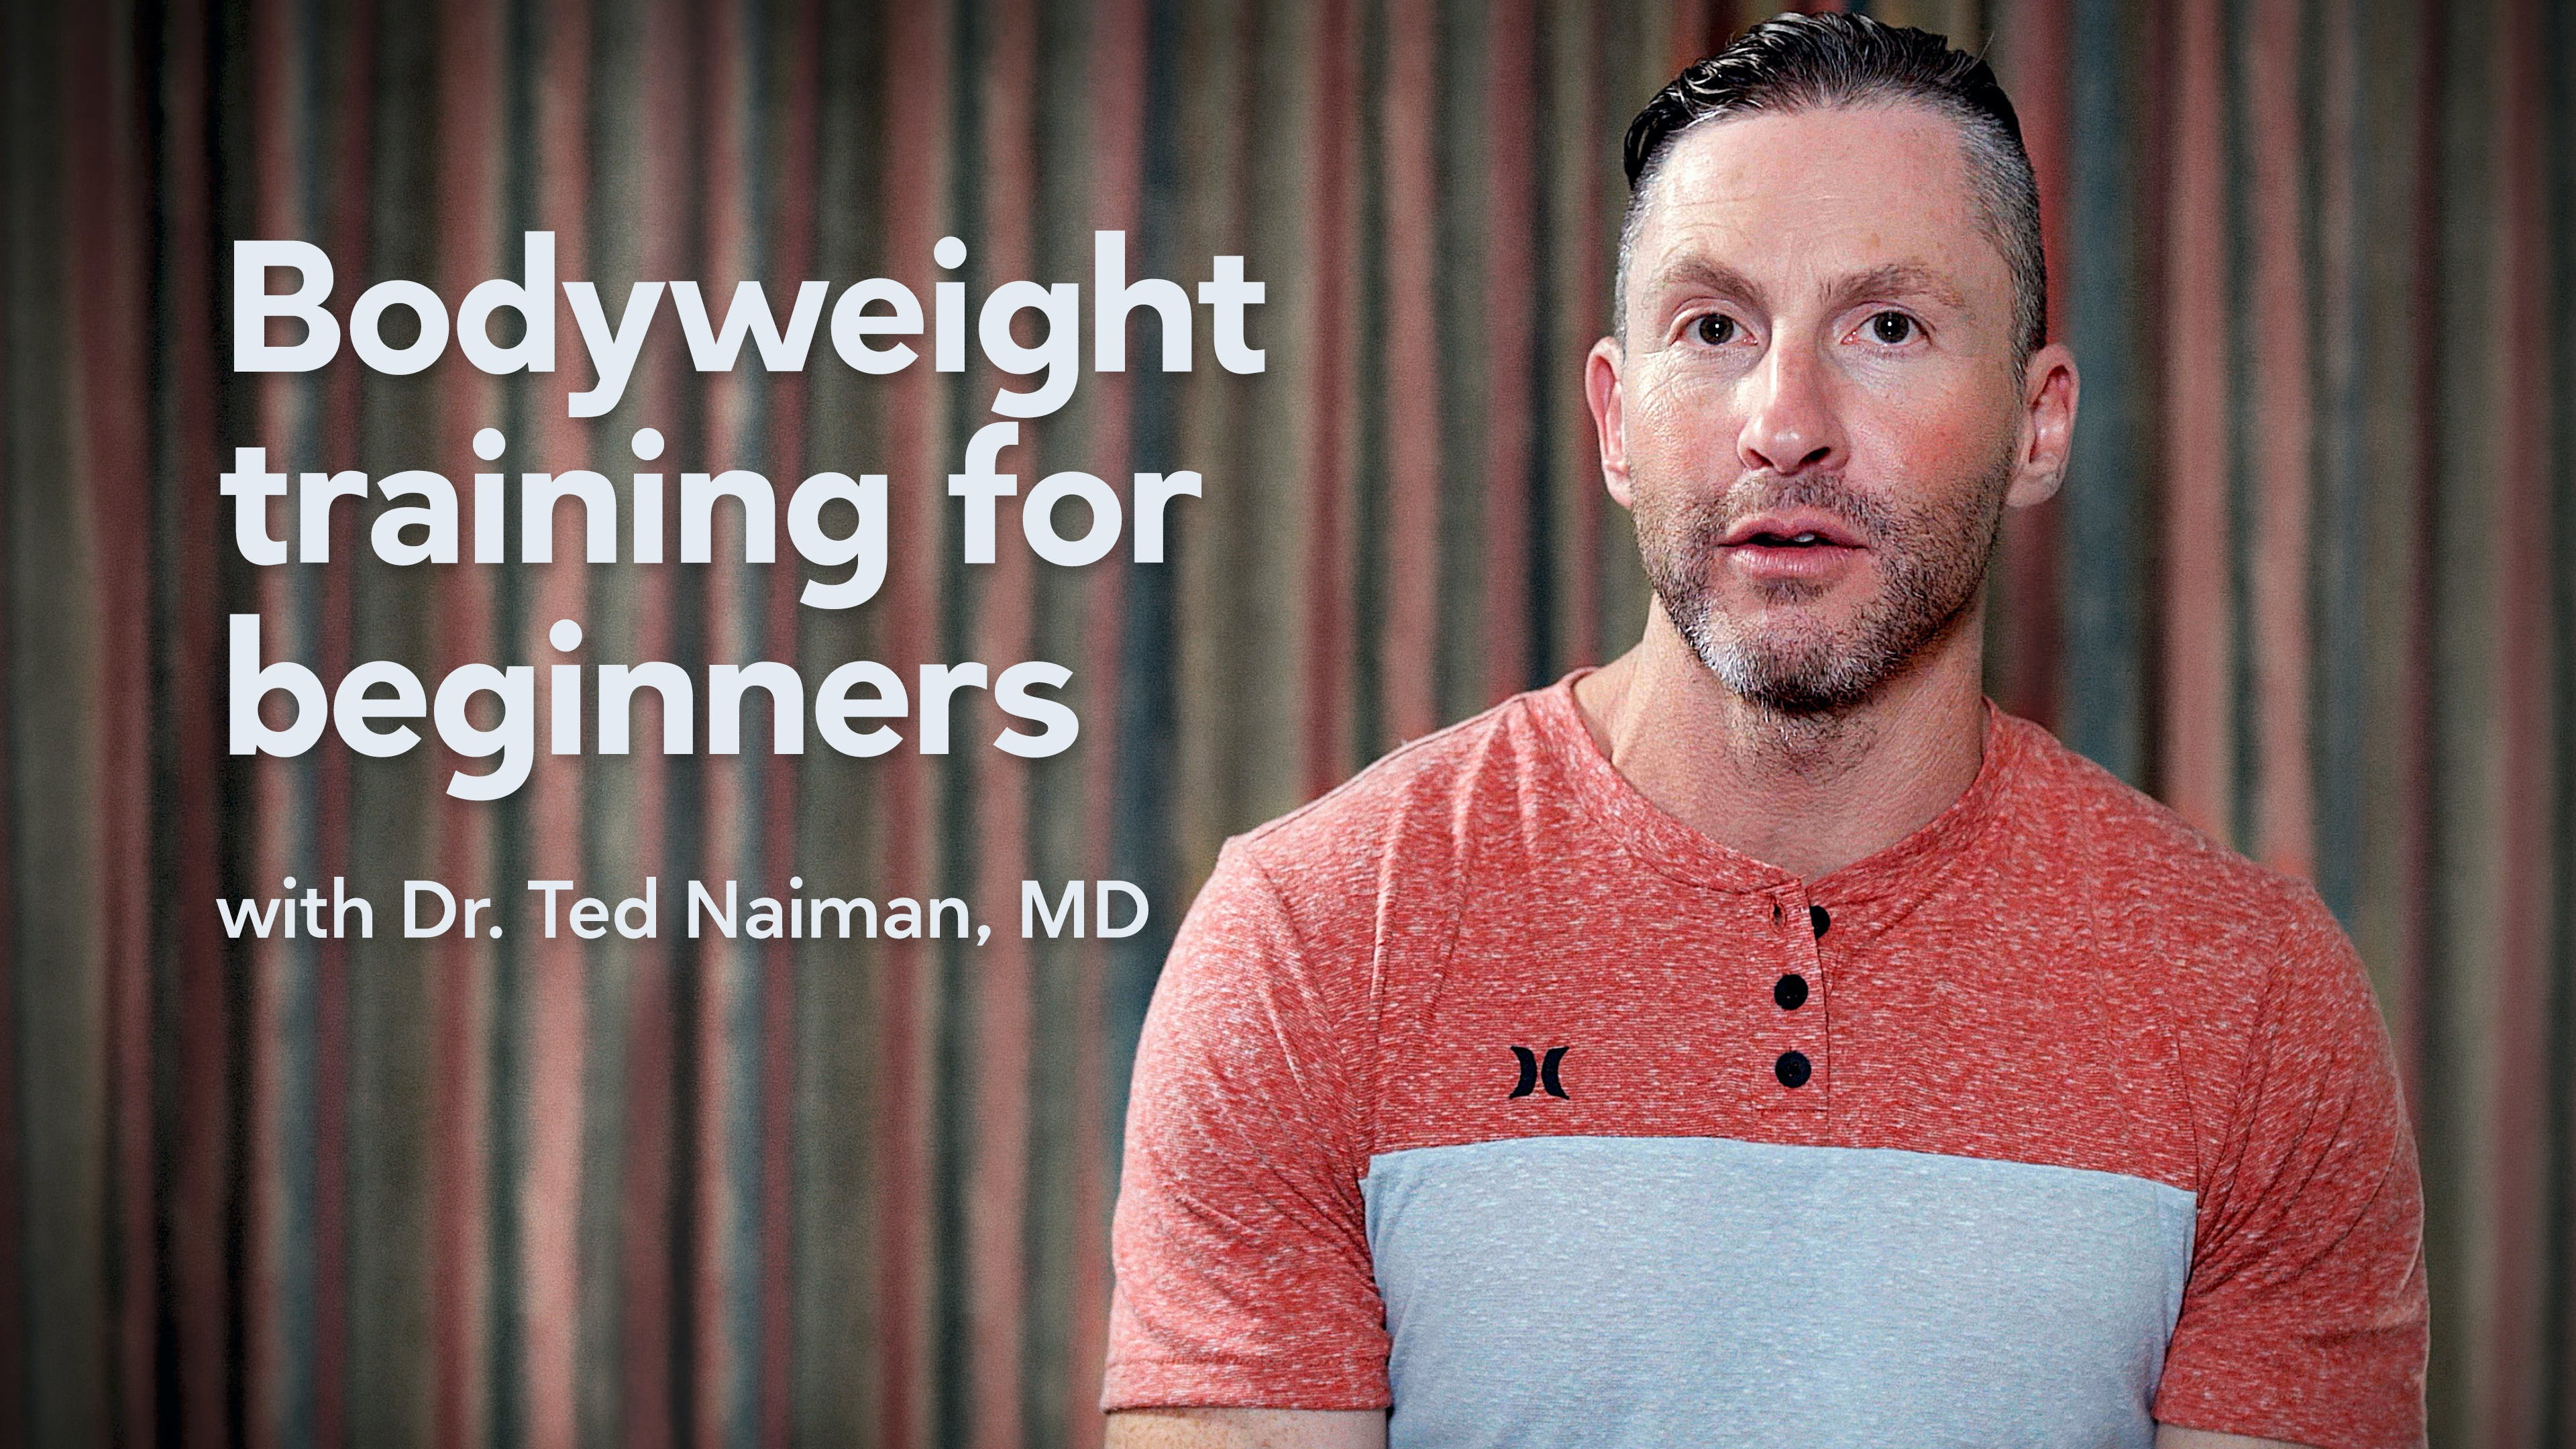 Bodyweight training for beginners with Dr. Ted Naiman